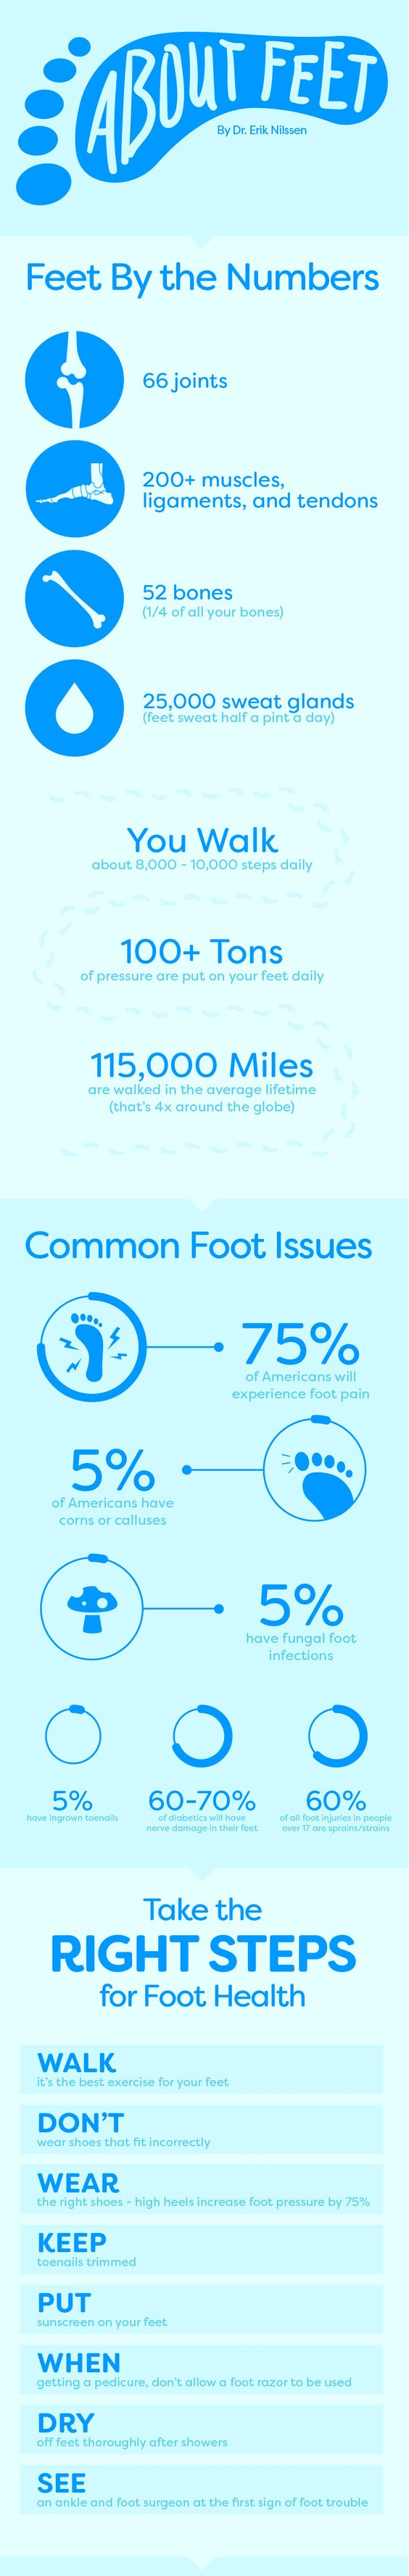 Things You Should Know About Your Feet - Nilssen Orthopedics